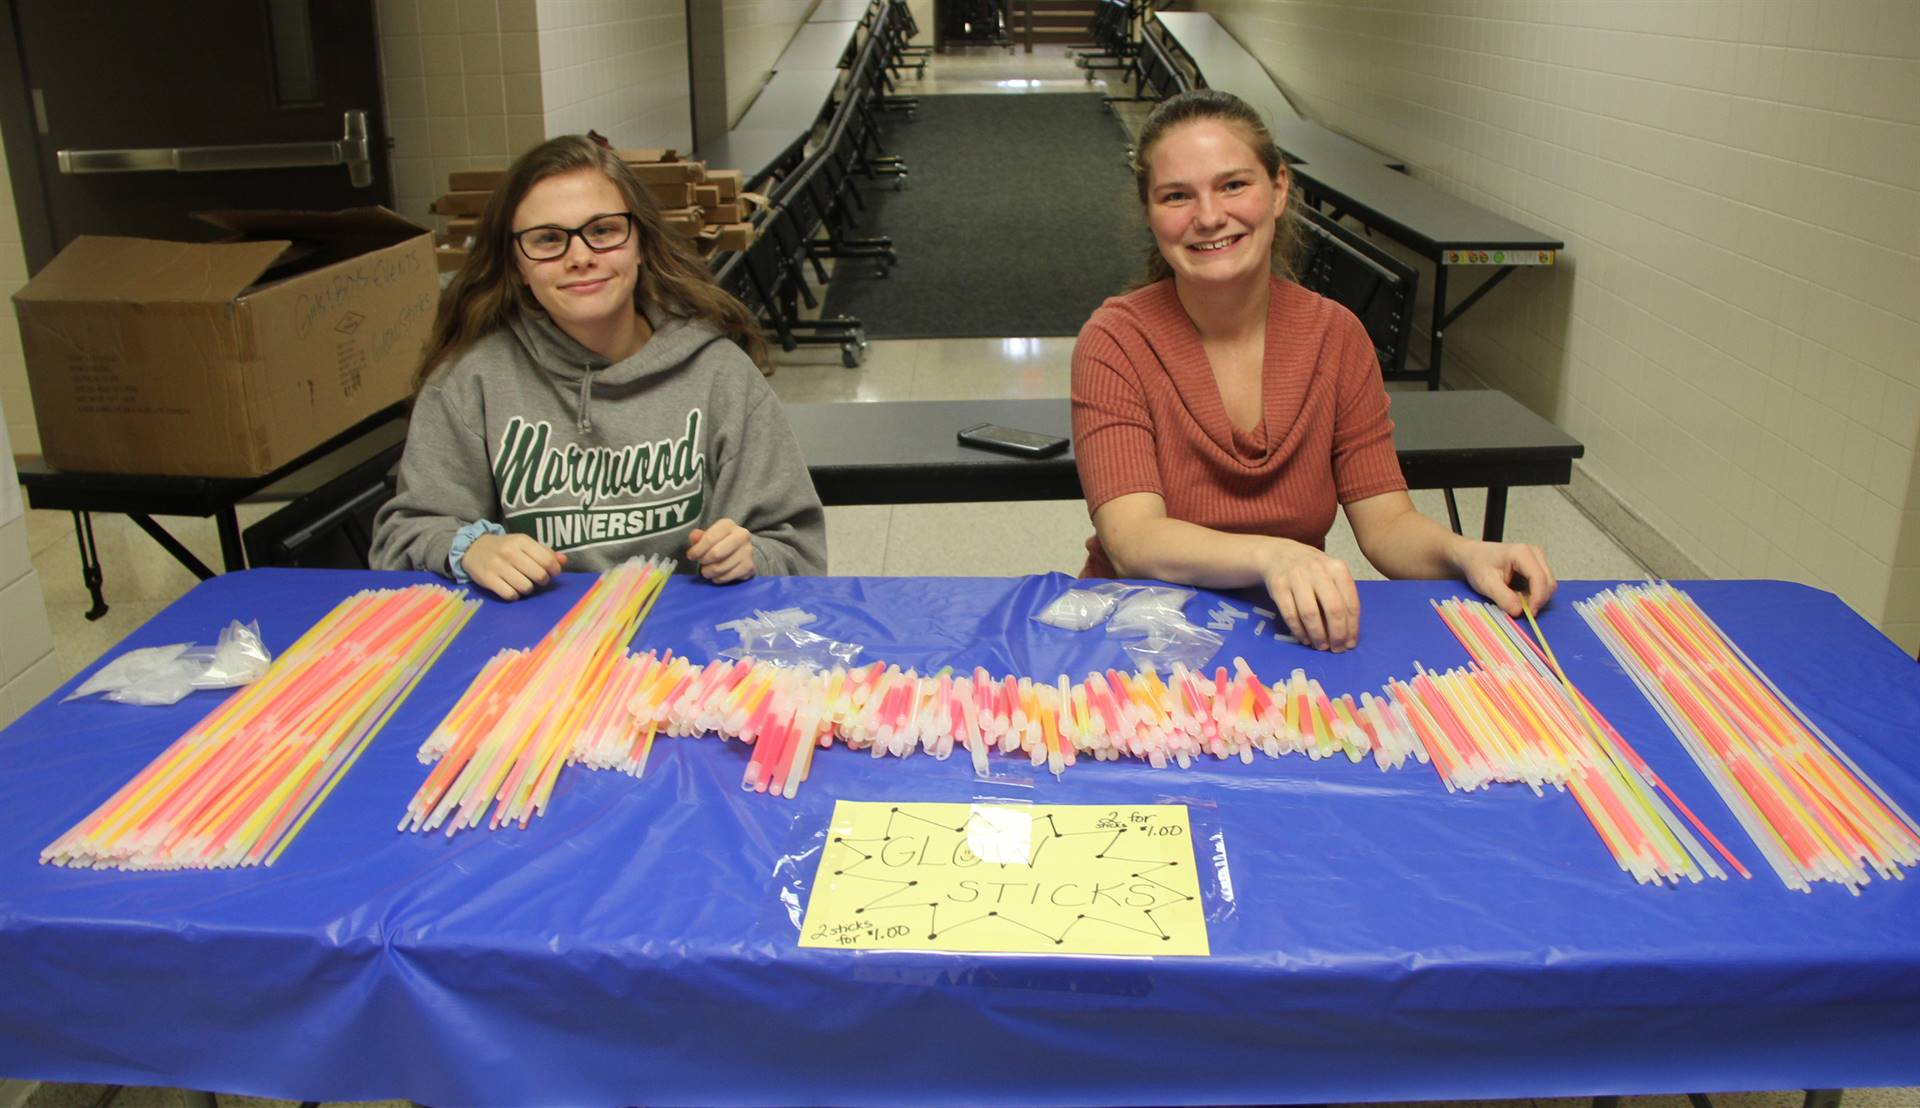 volunteers with glow sticks